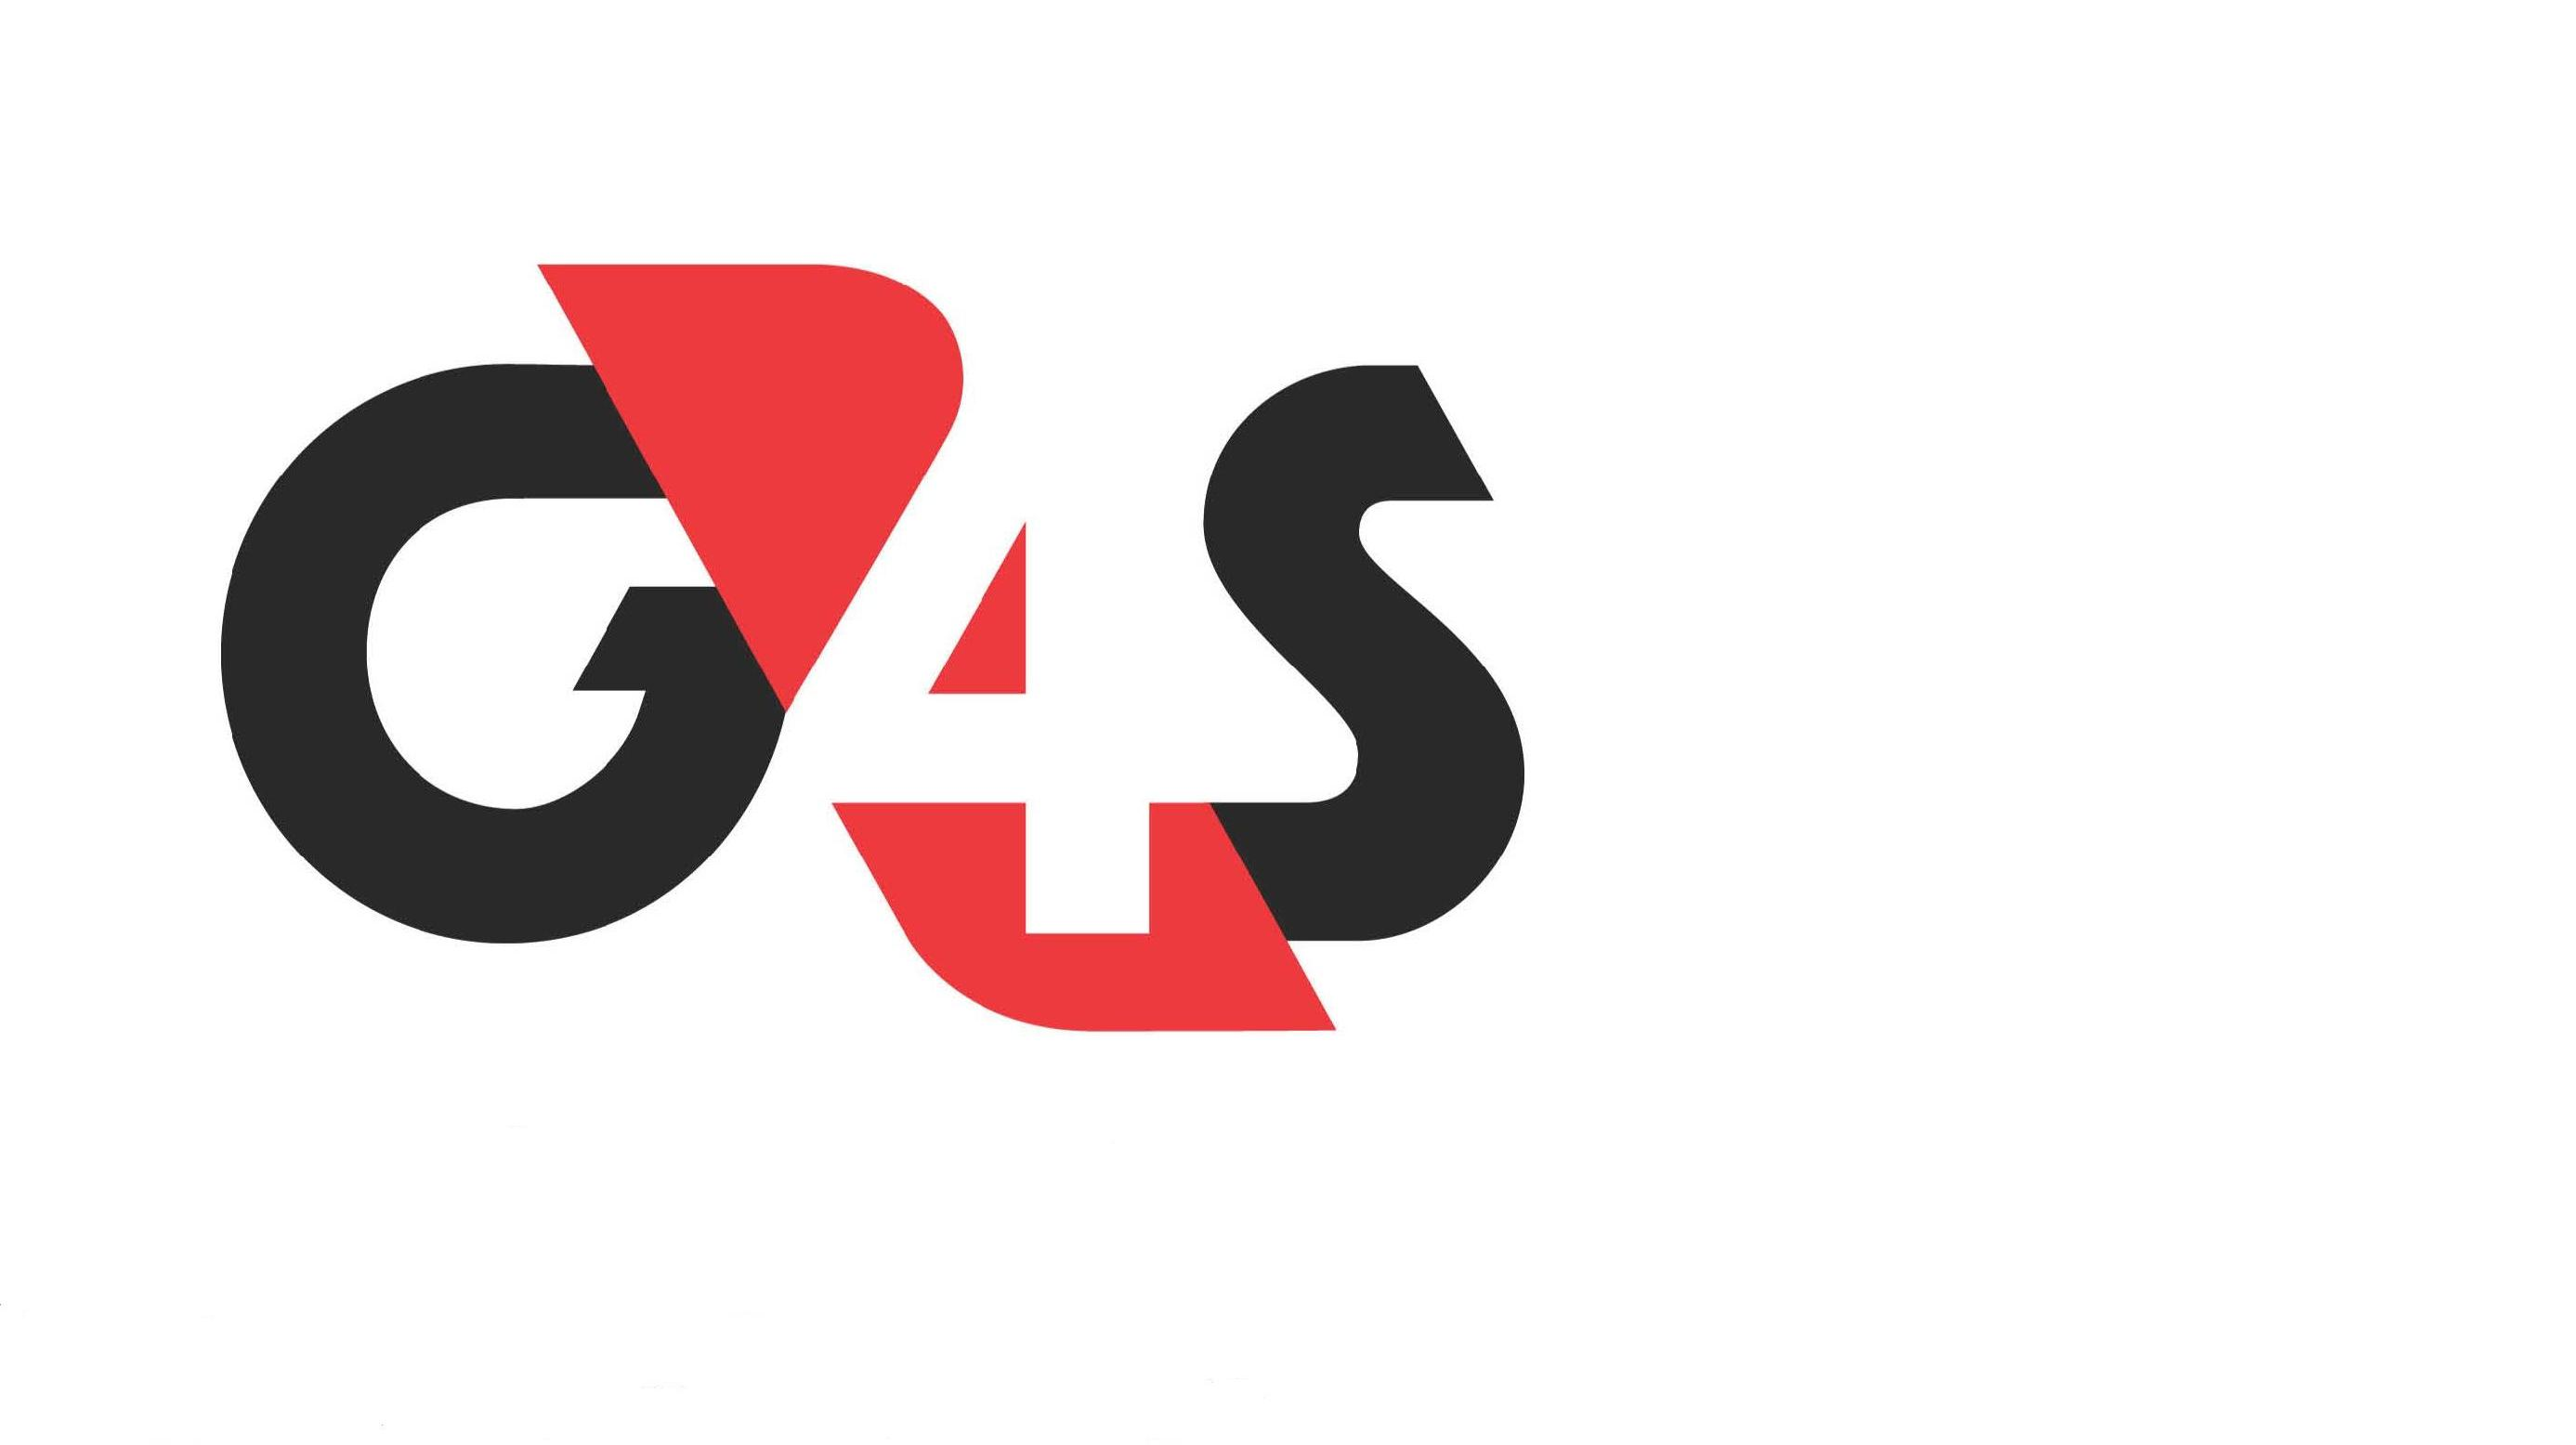 G4S-logo-for-website-feature-2.jpg